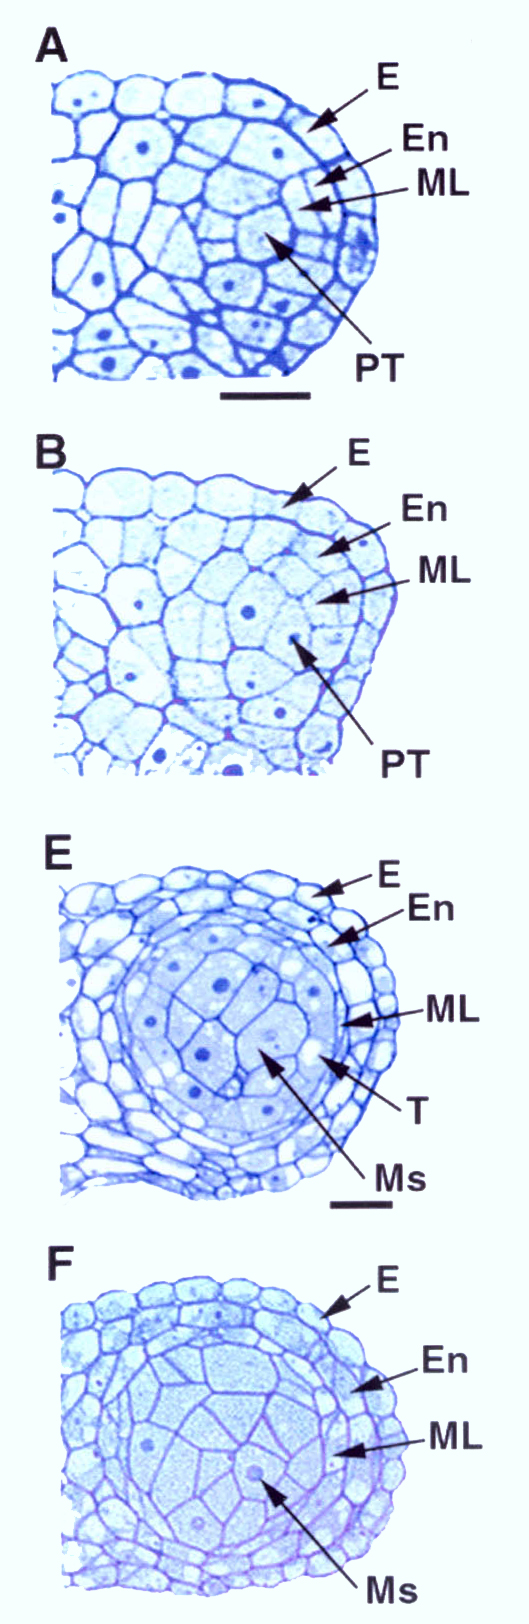 Comparison of the wild-type and ems1 mutant anther development. The microscope images show the upper right lobe of the anther.